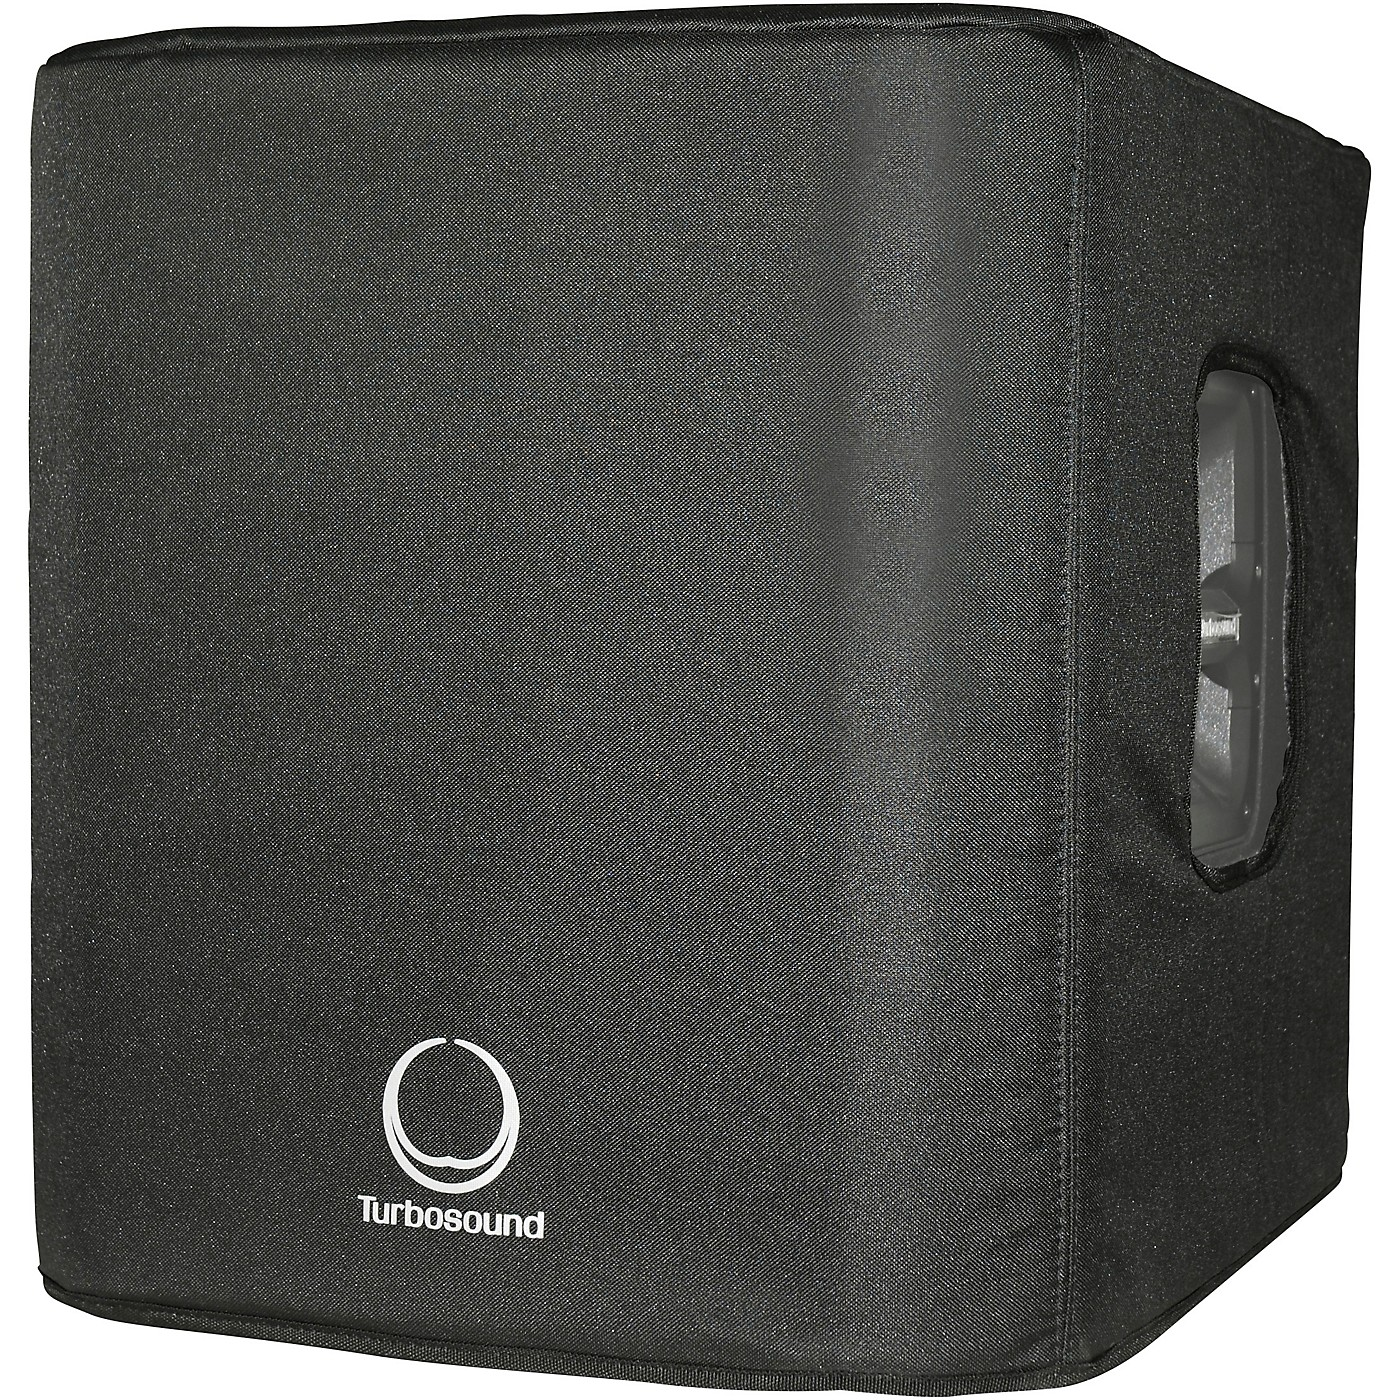 Turbosound iP2000-PC Speaker Cover for iP2000 Subwoofer thumbnail